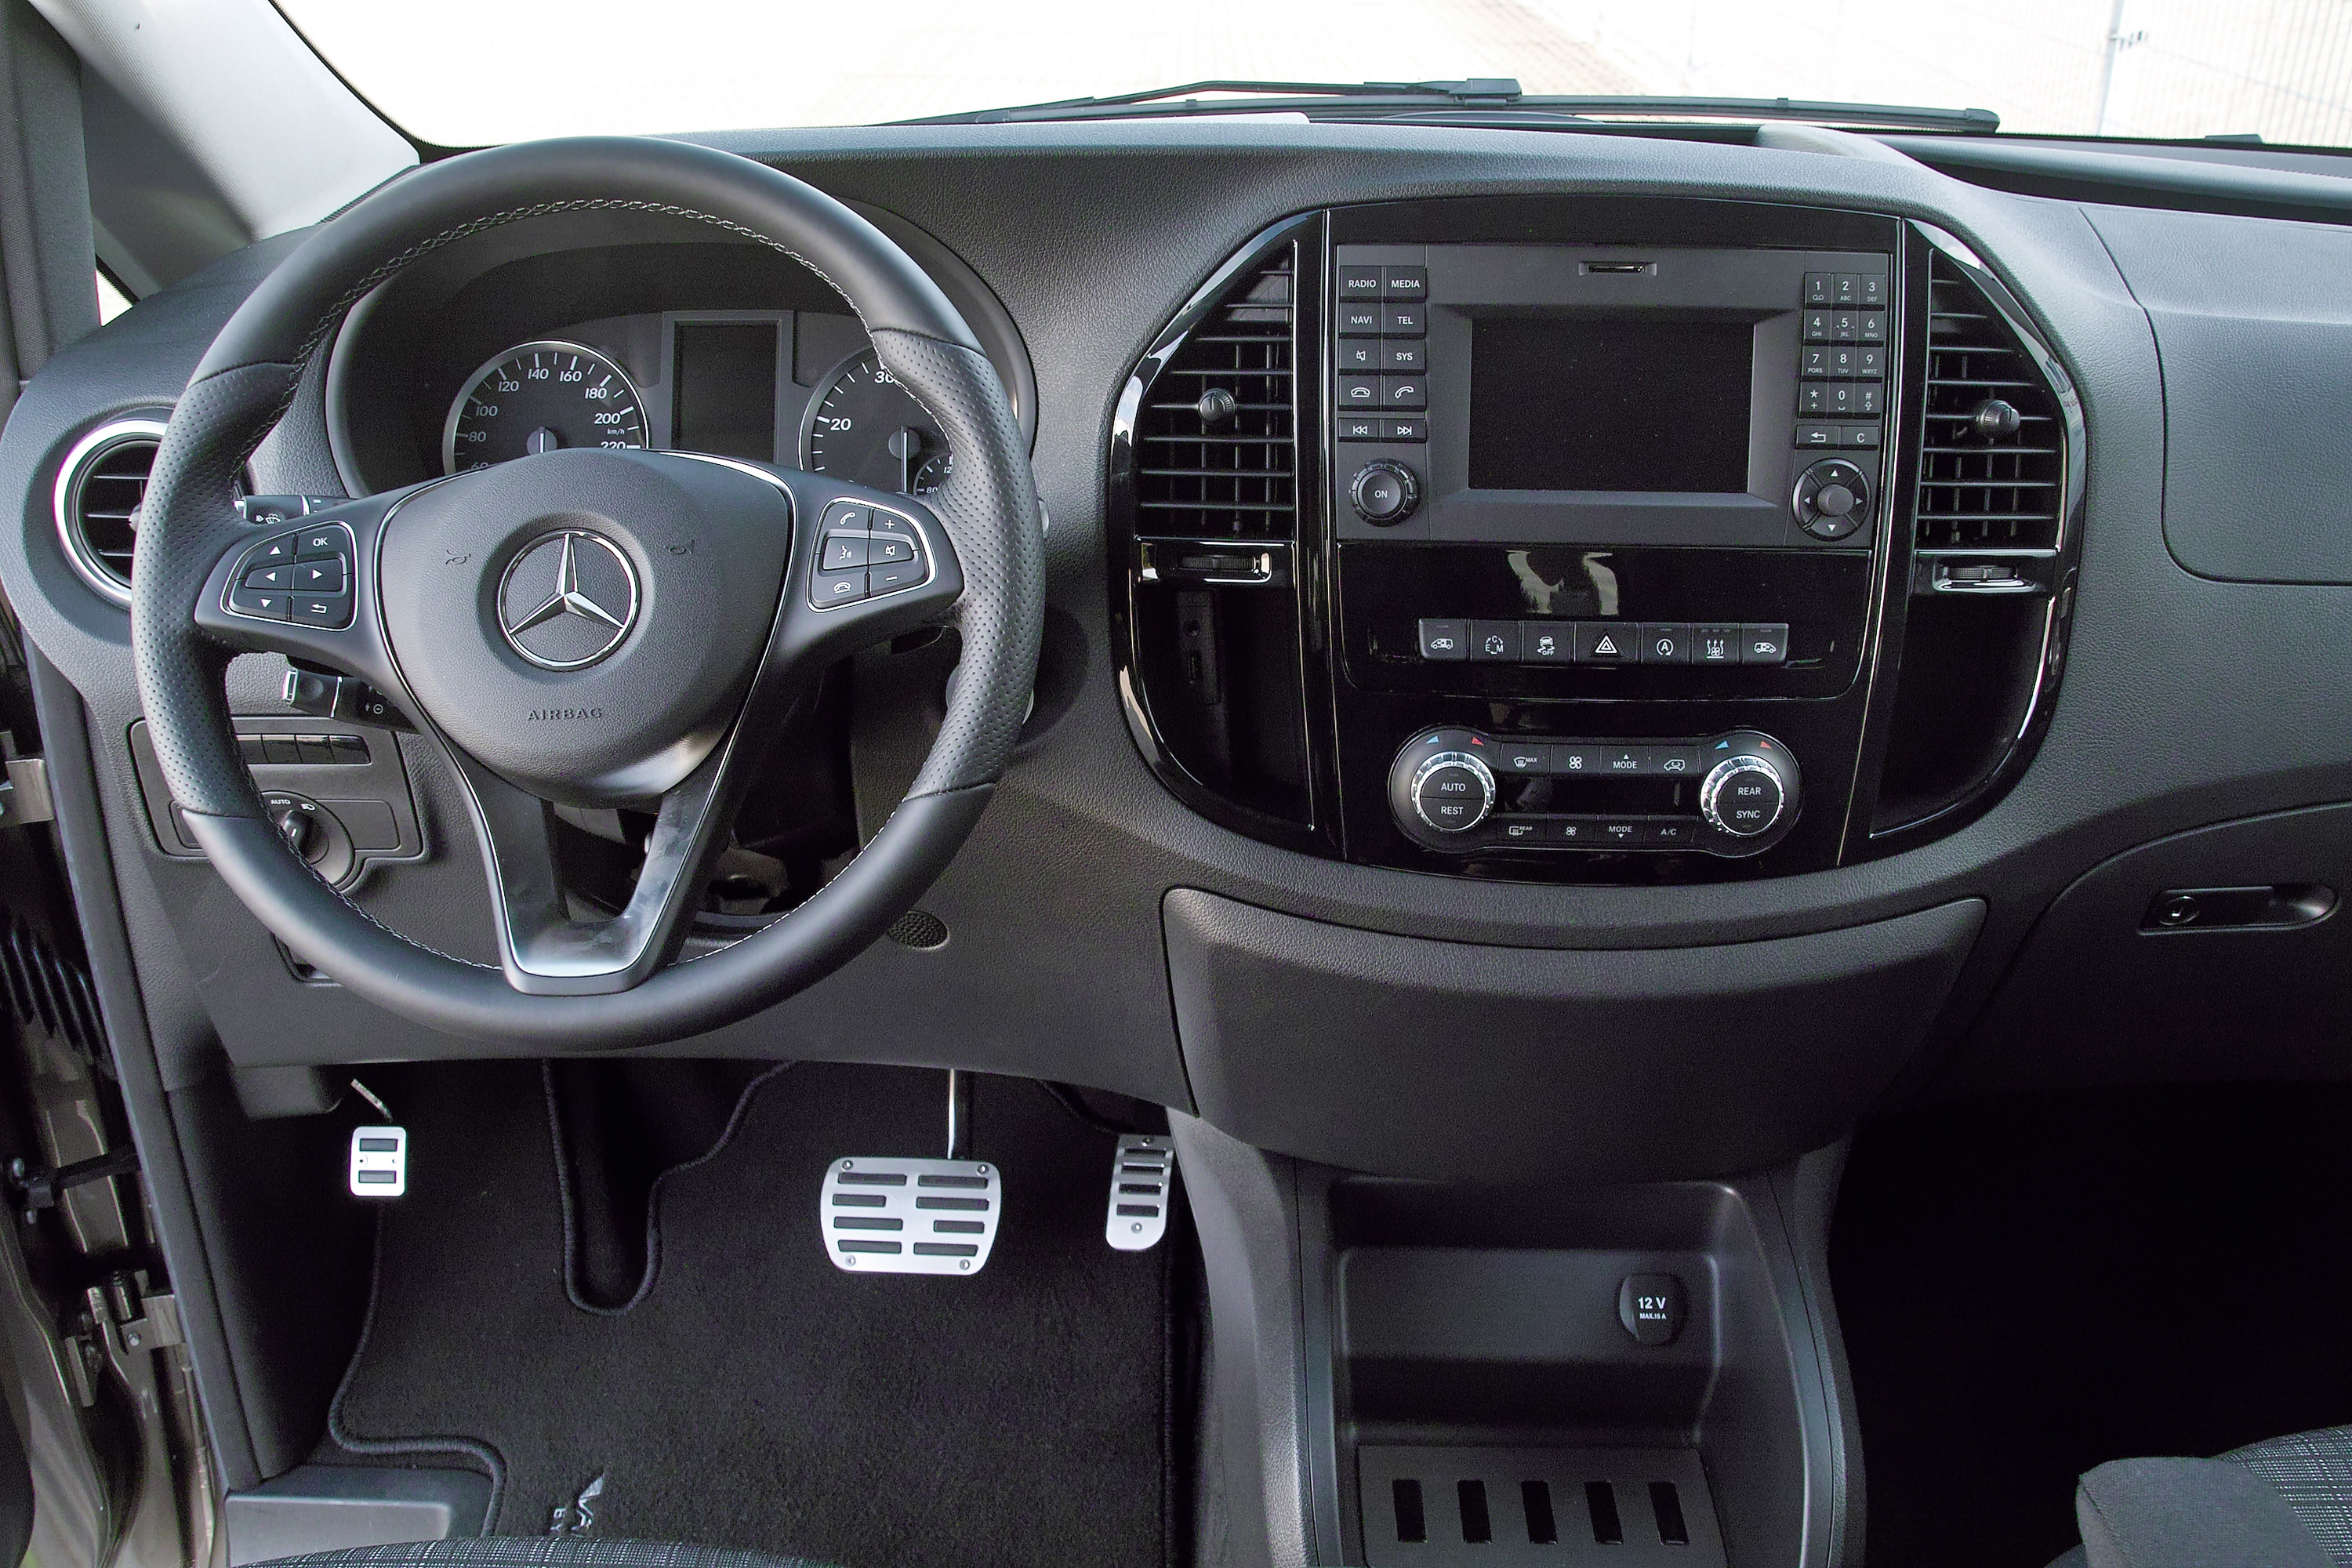 Hartmann Mercedes-Benz Vito photo #18